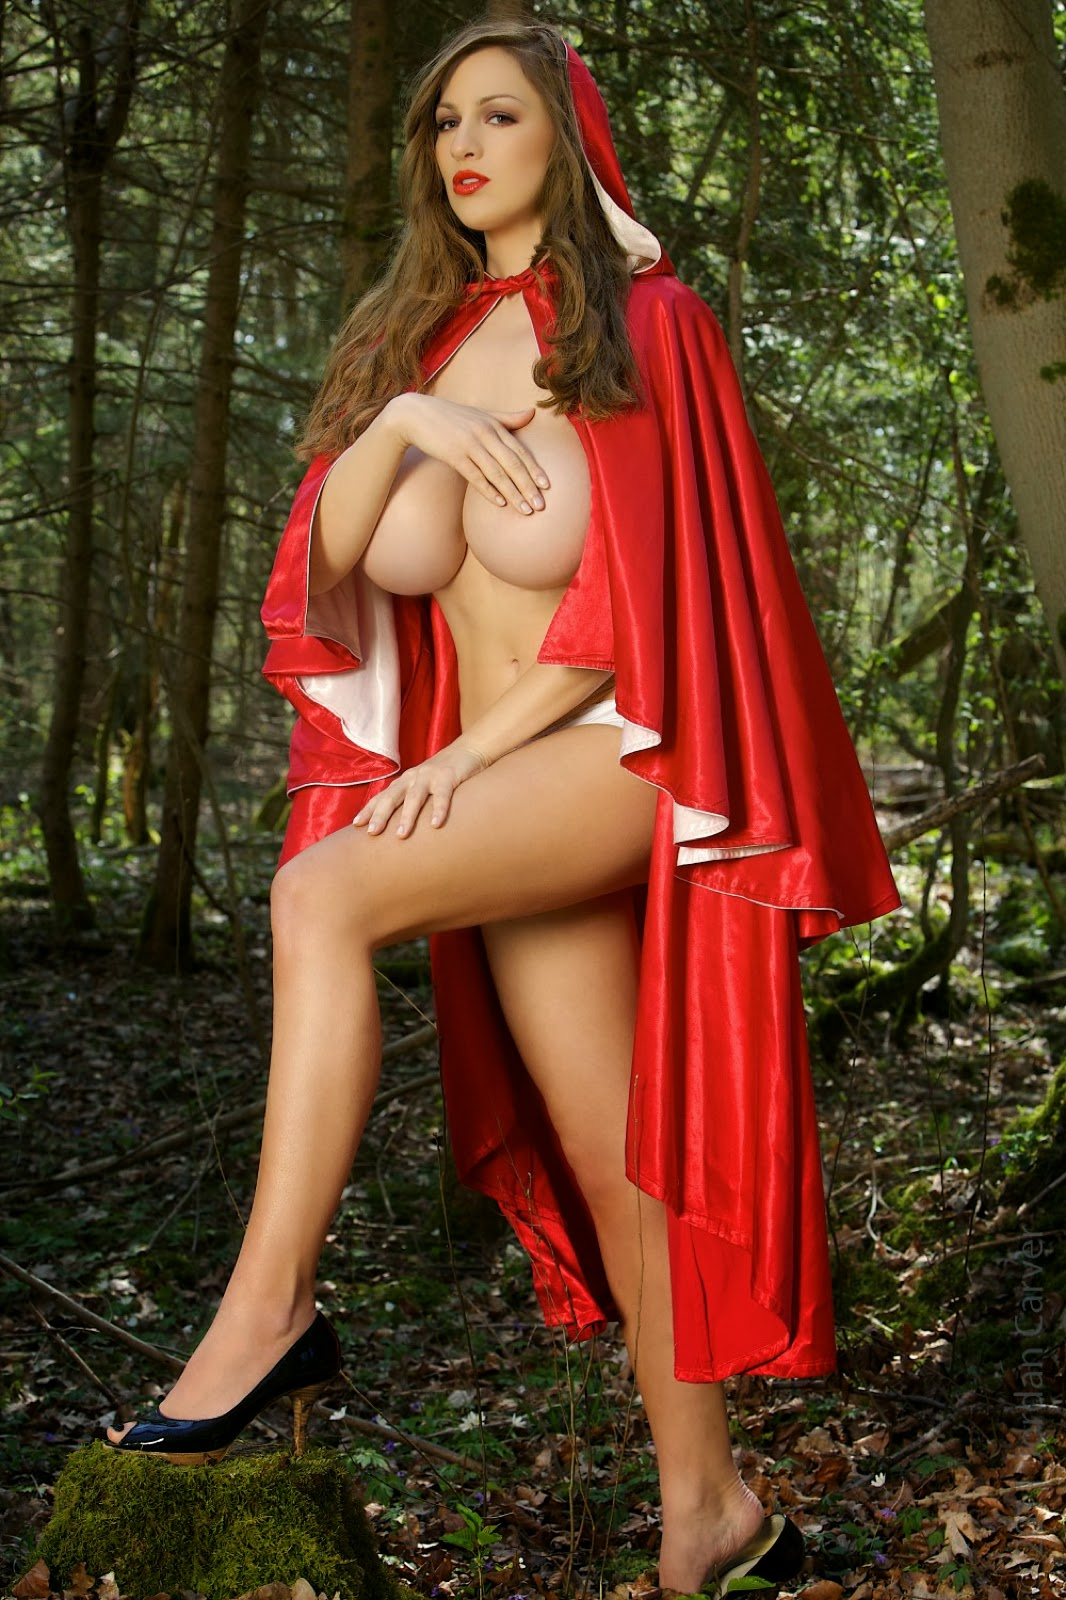 hood nude riding Sexy little red